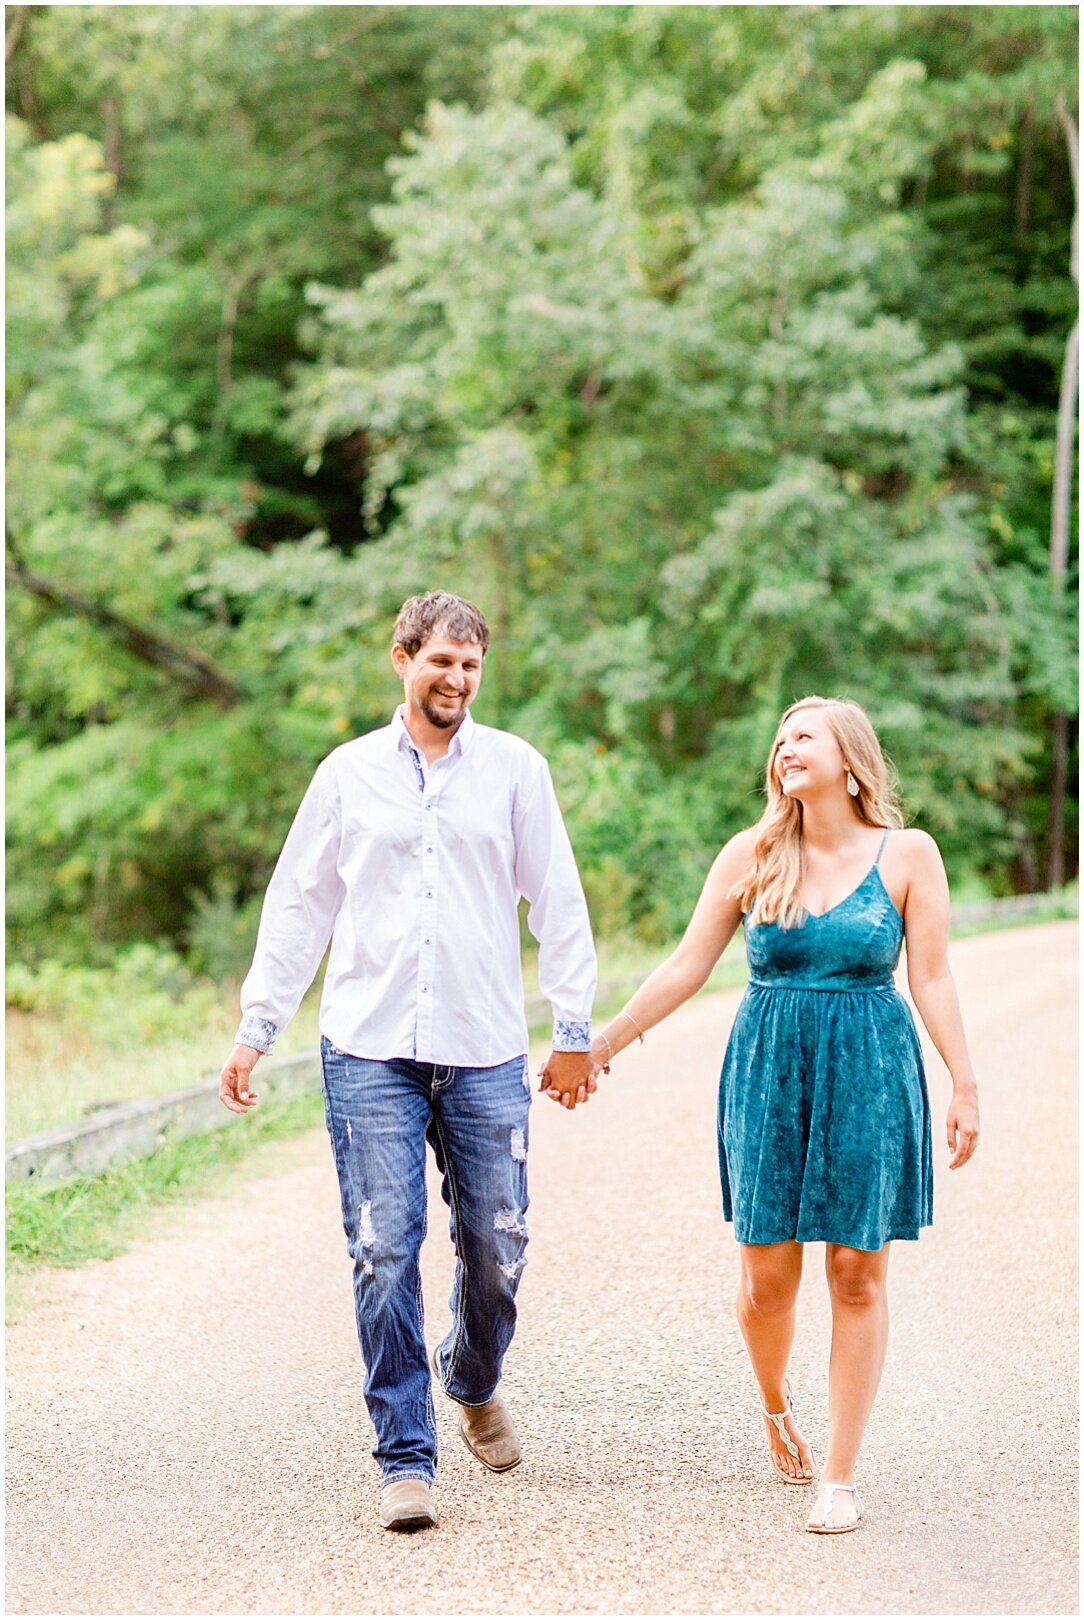 Yorktown Engagement Session - Brooke Waldroup Photogrpahy 19.jpg